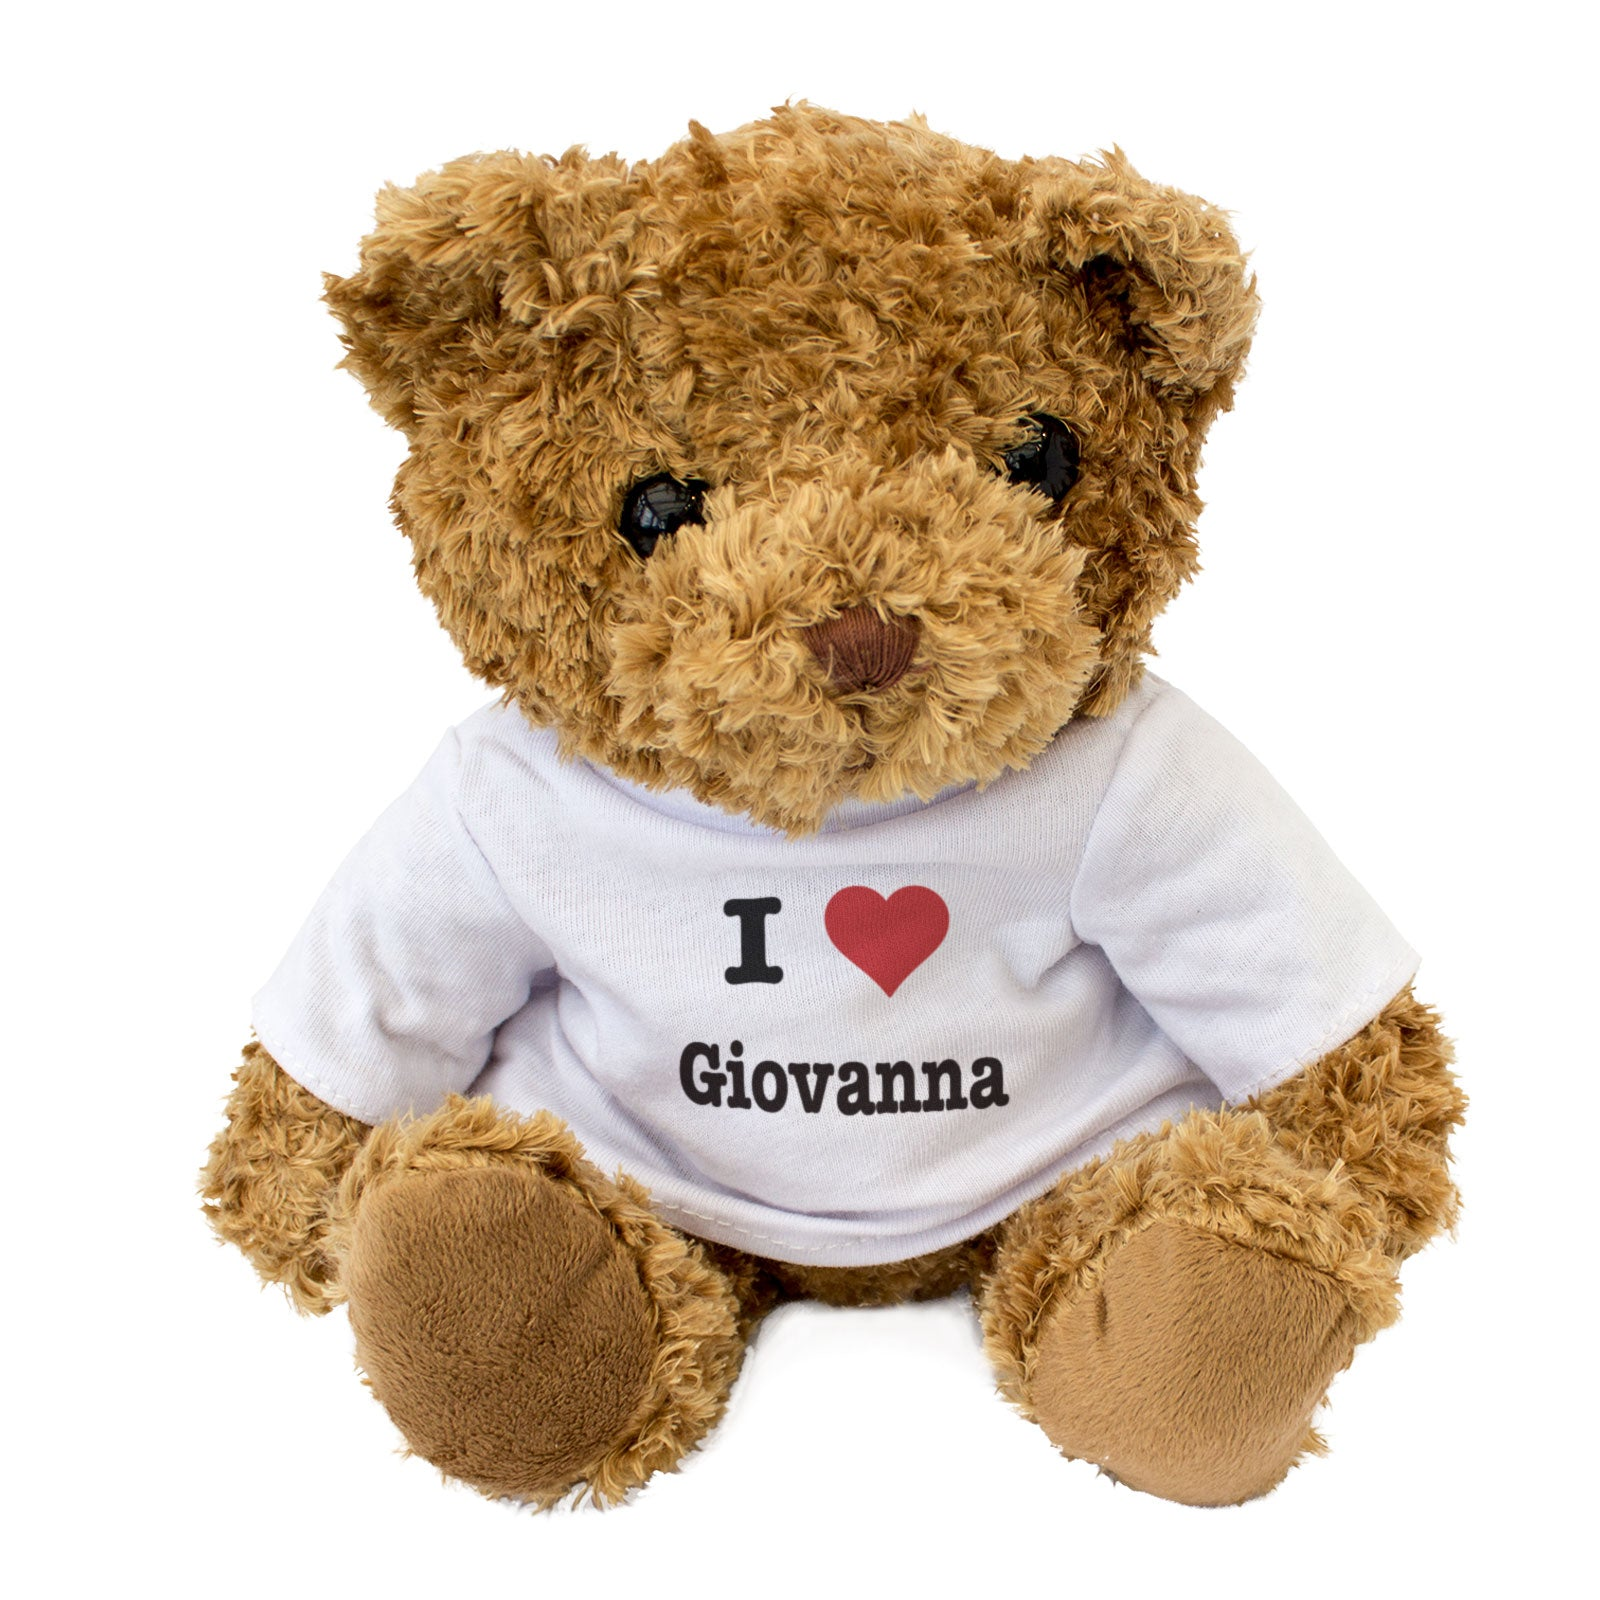 I Love Giovanna - Teddy Bear